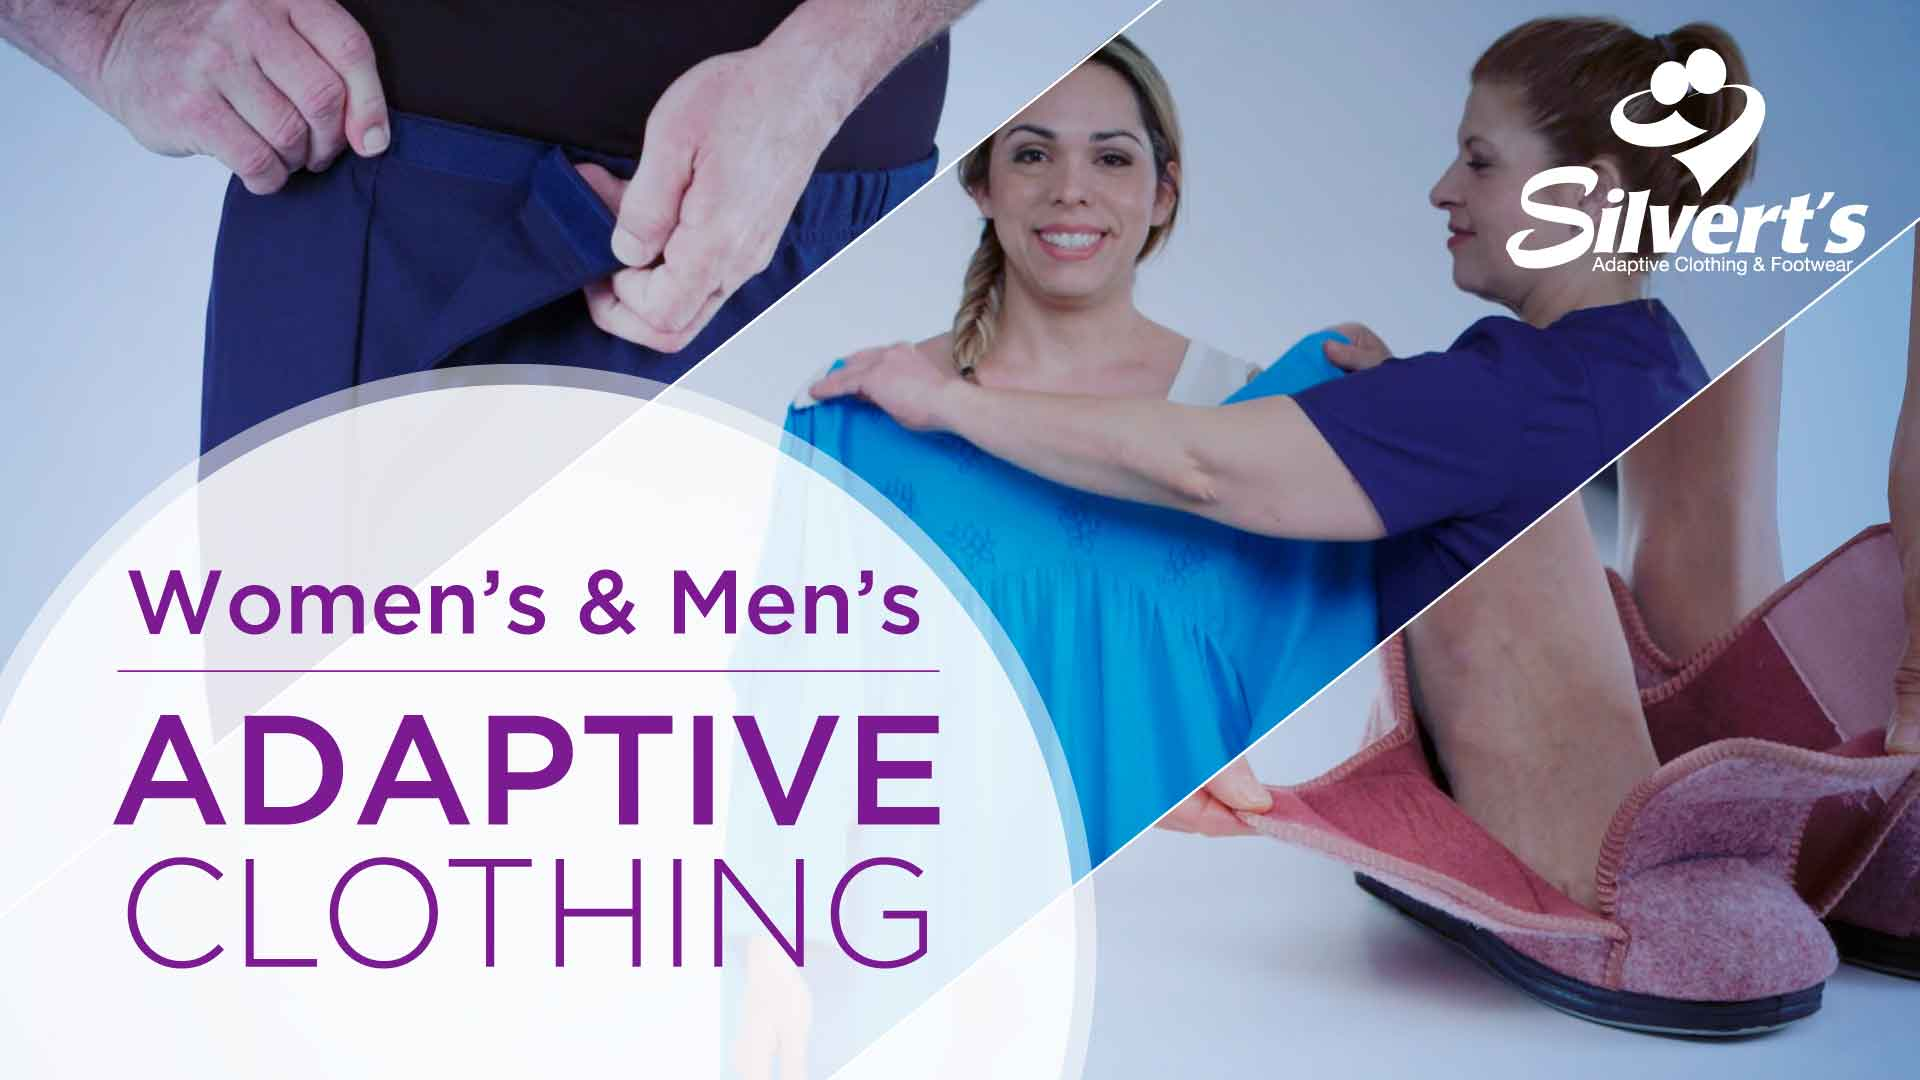 Women's & Men's Adaptive Clothing